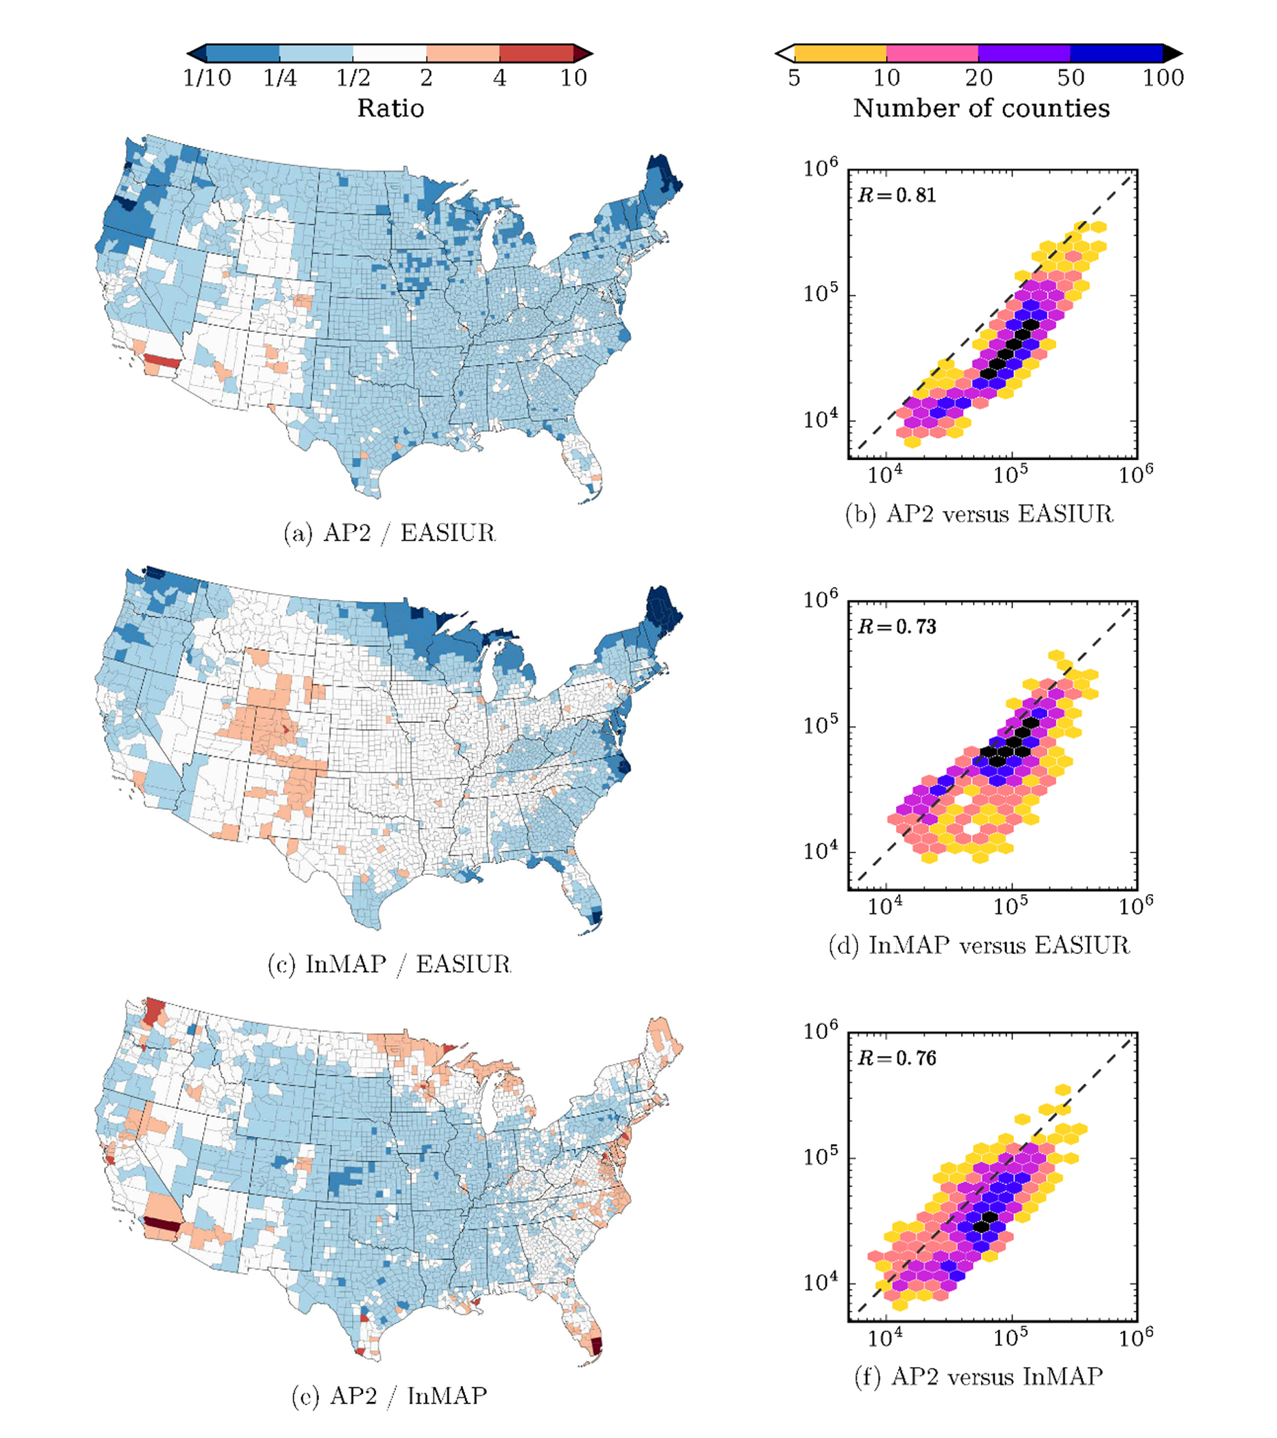 Maps showing air pollution in the United States and also counties